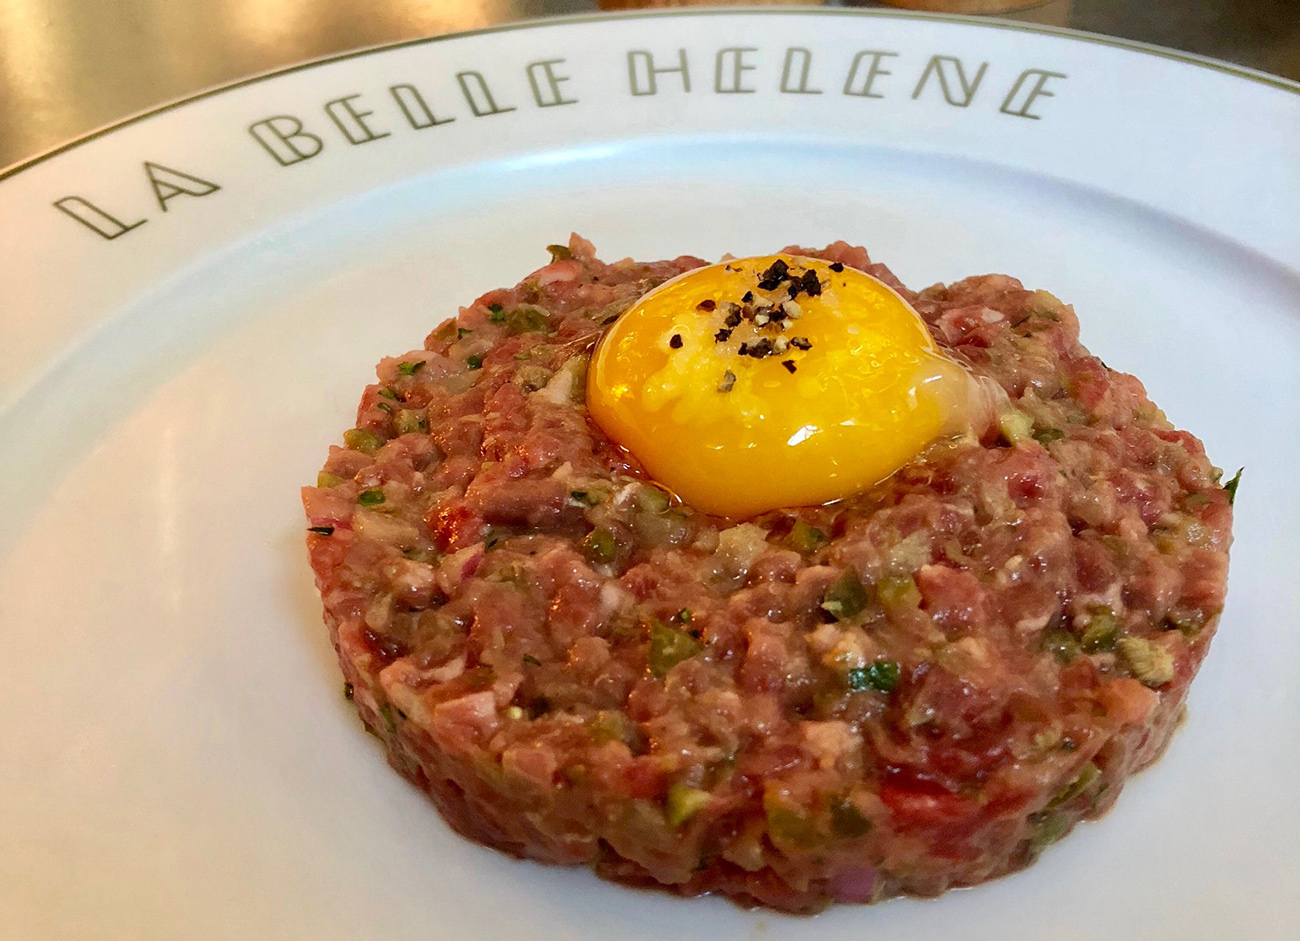 6 quick takeaways from my first visit to La Belle Helene, the new upscale French brasserie in Uptown